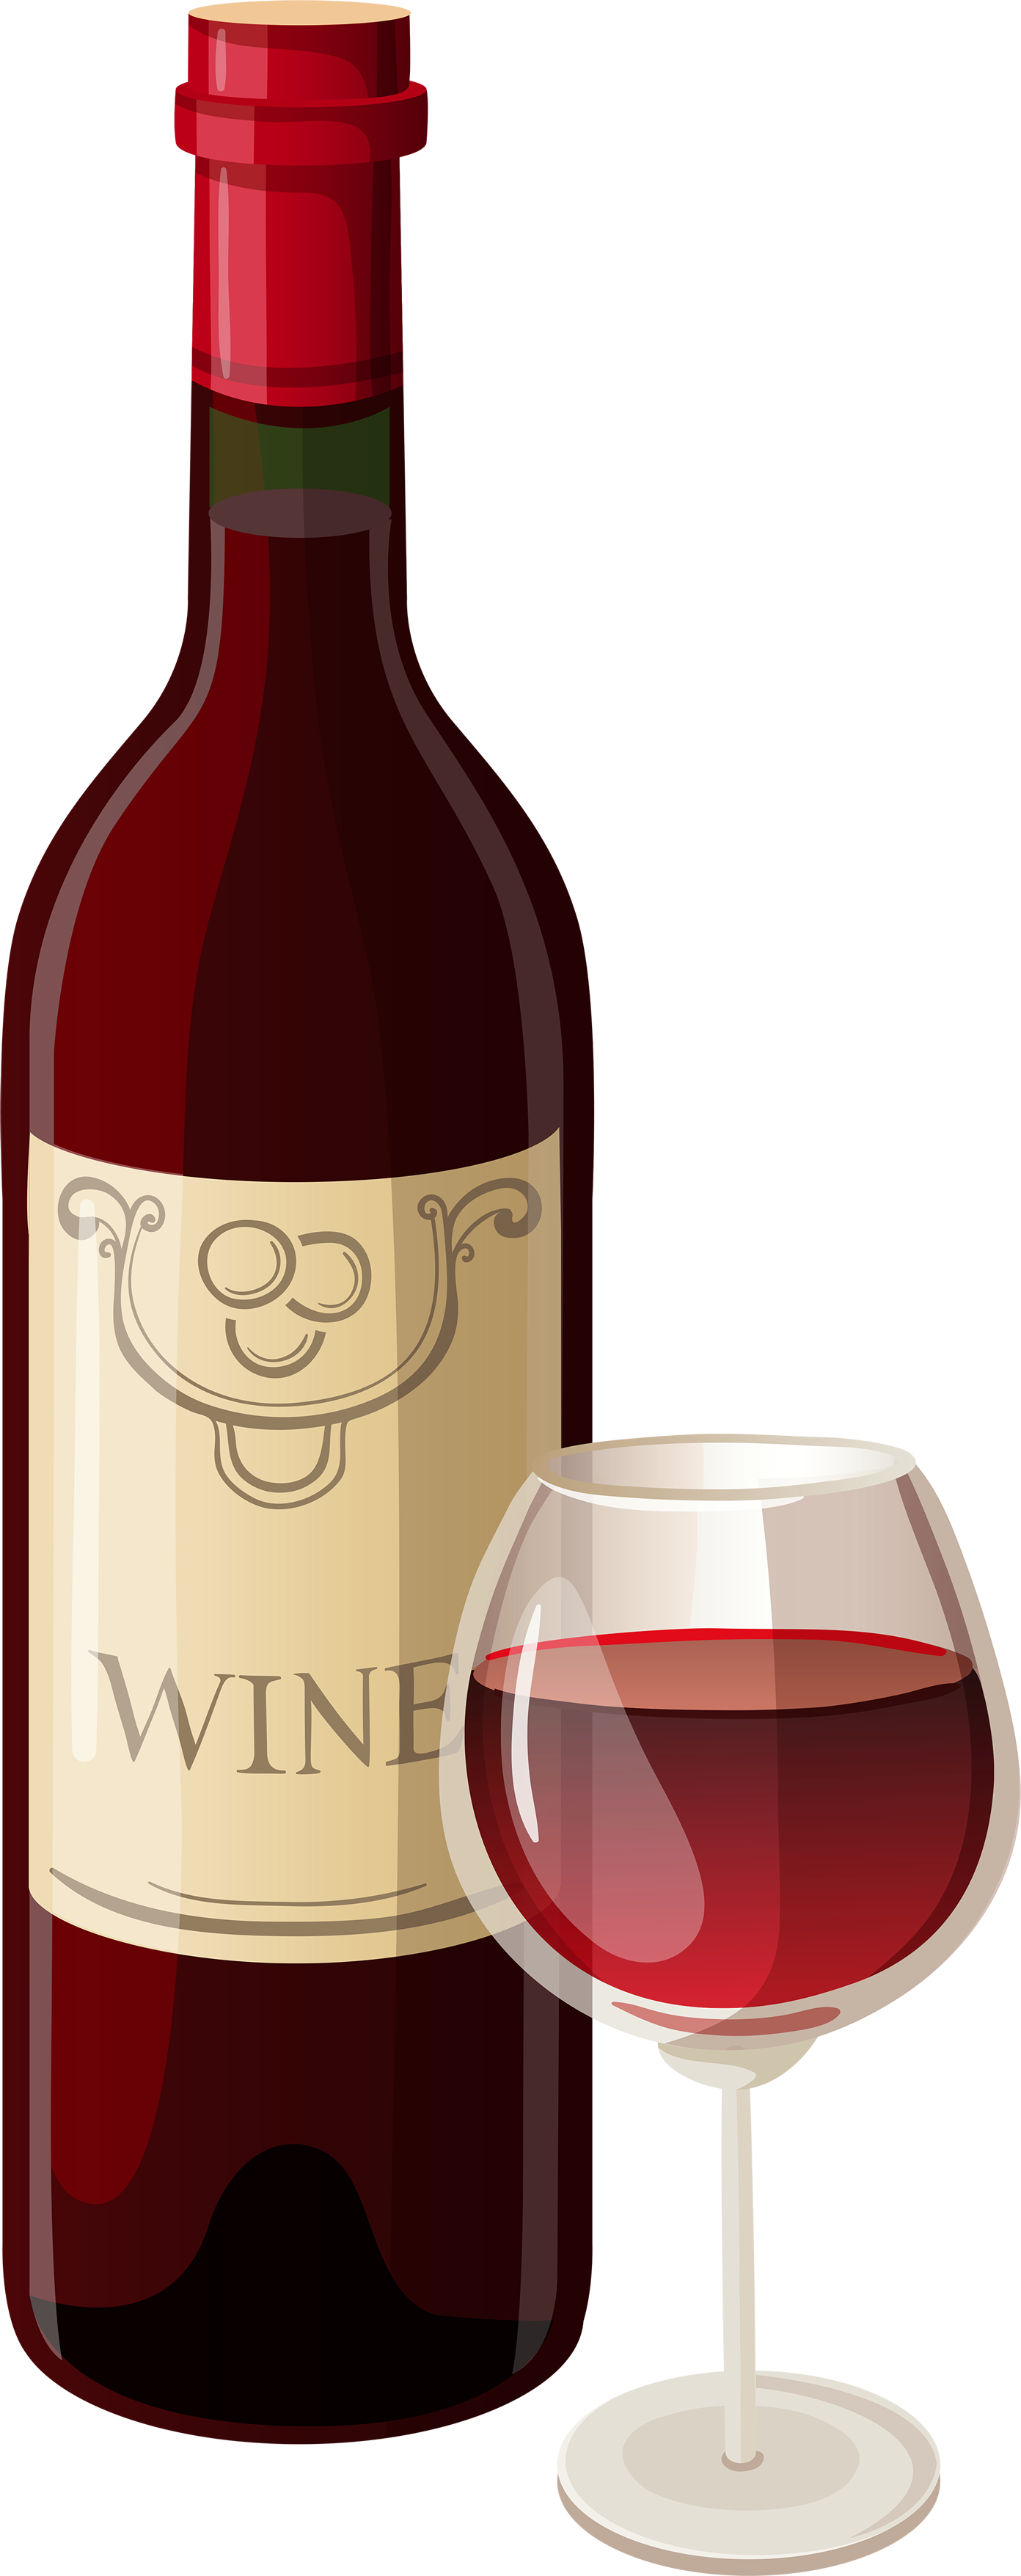 small resolution of image result for wine bottle and glass clip art